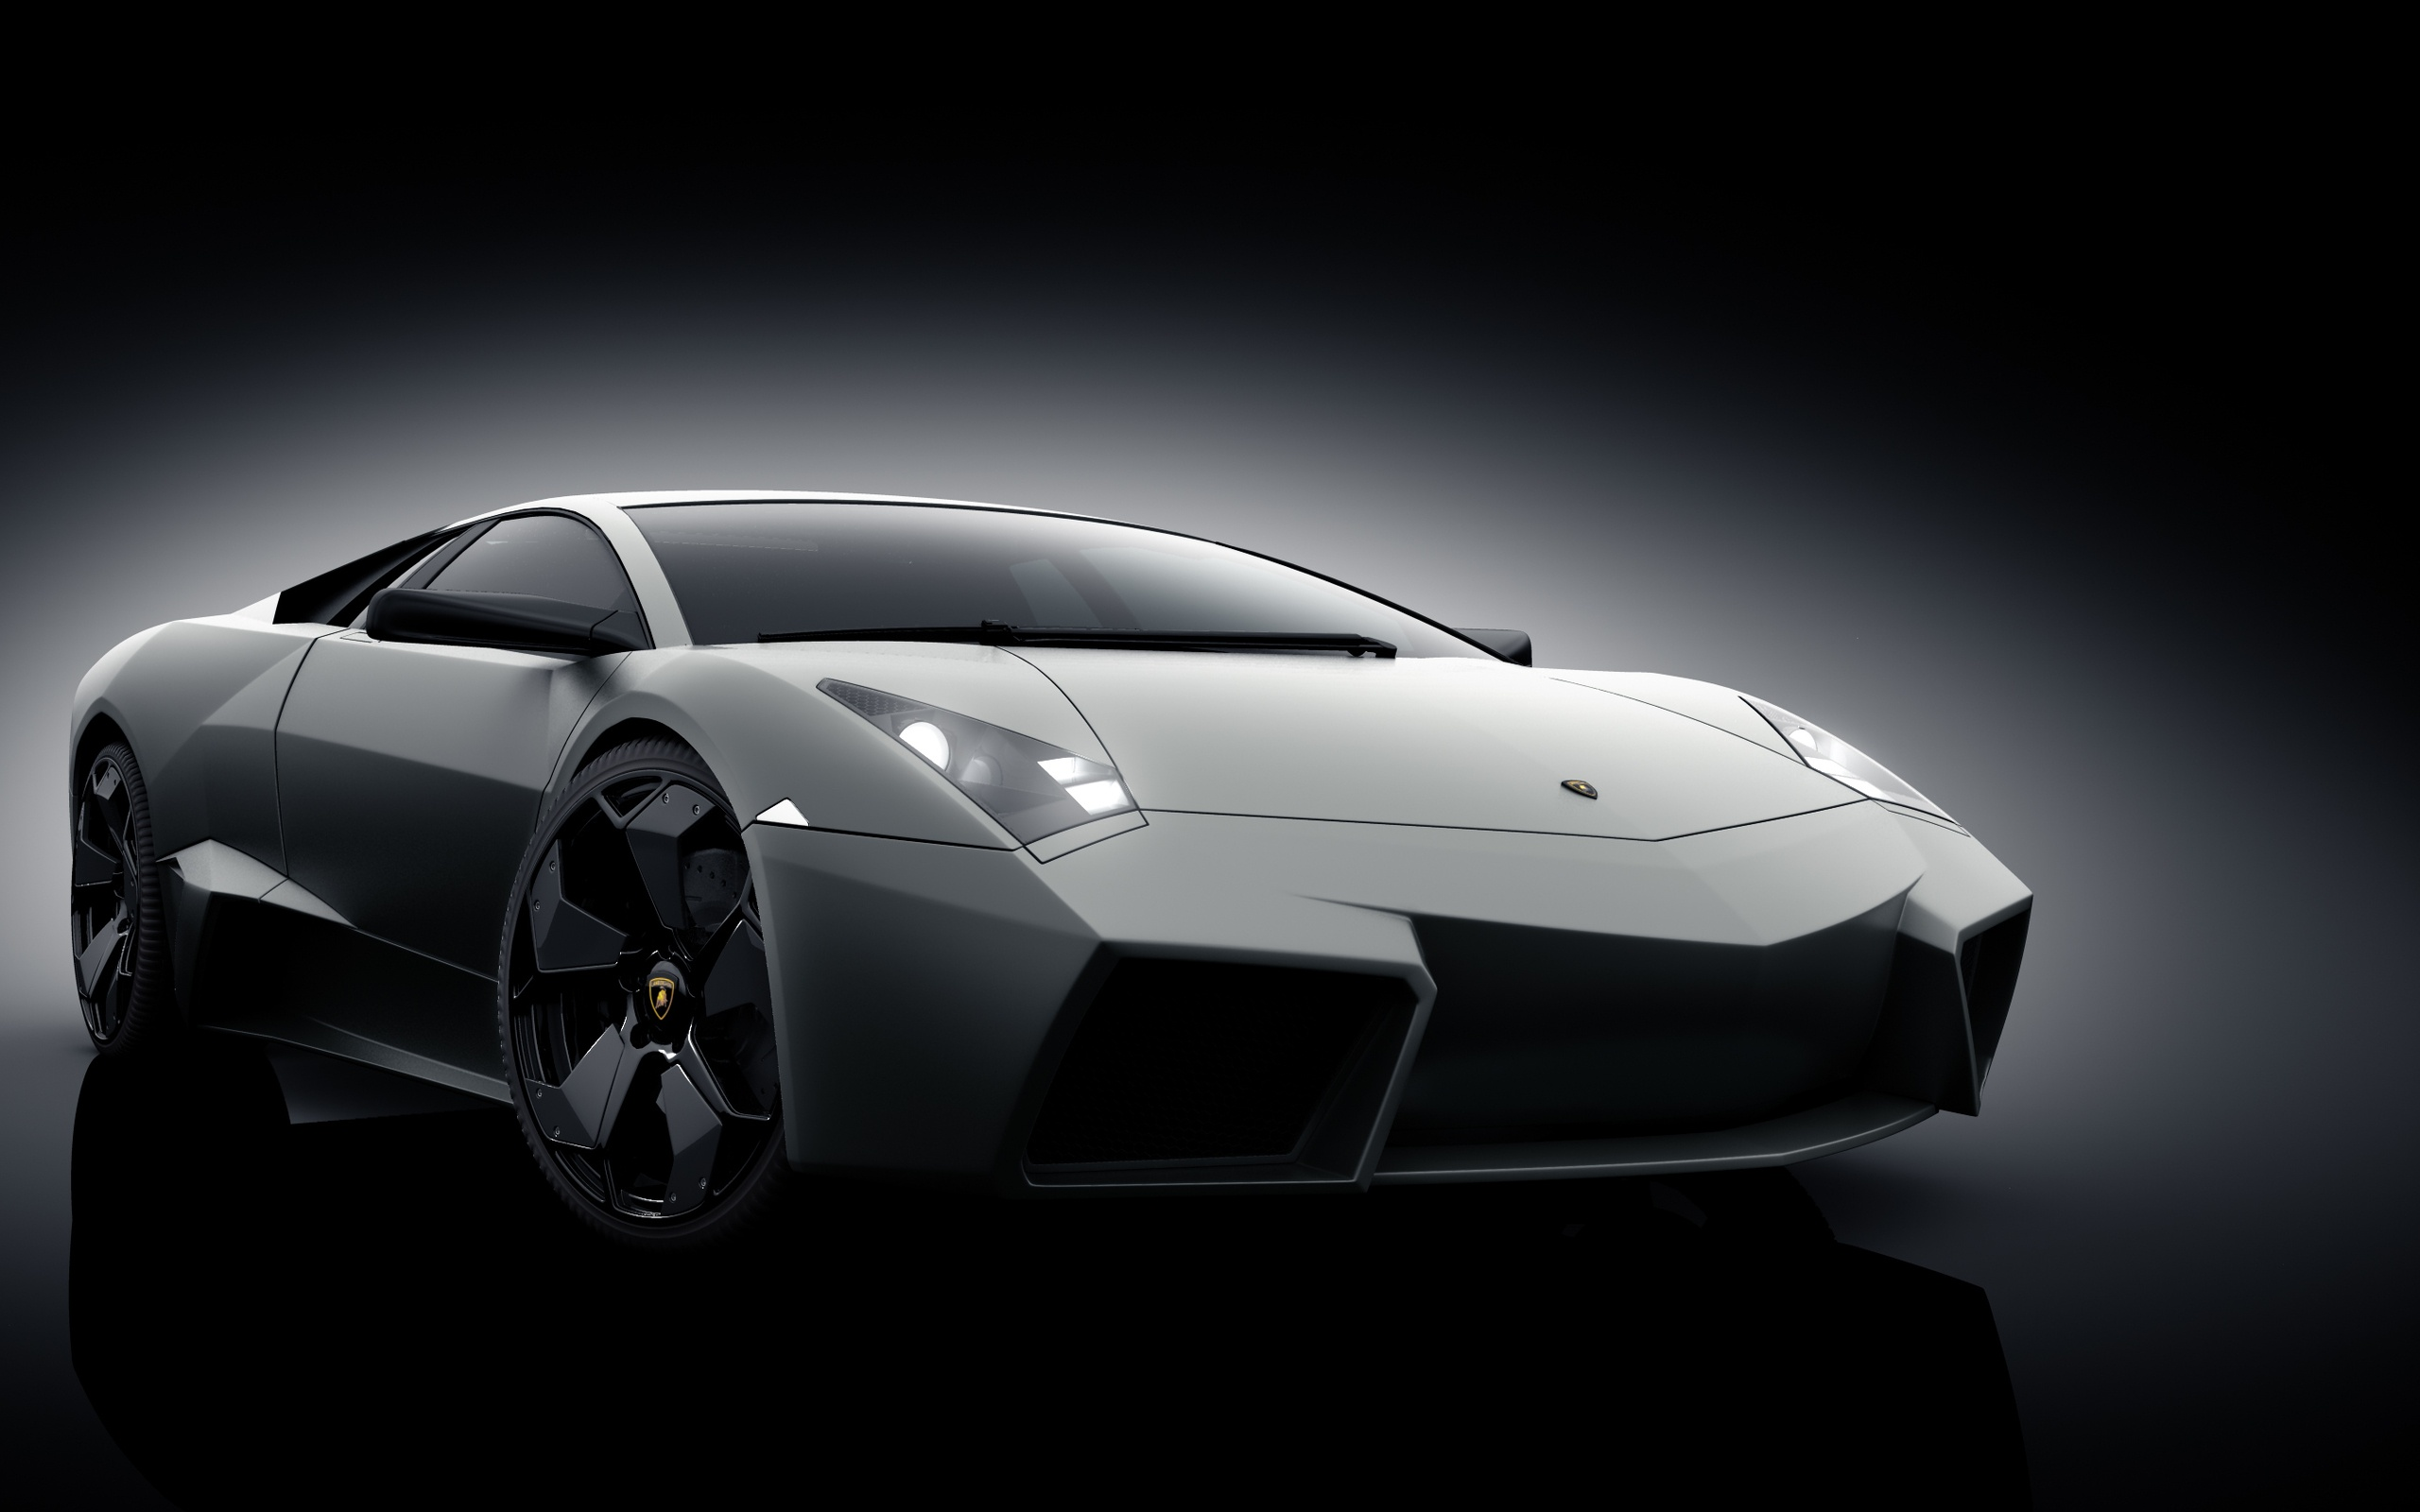 The Amazing Lamborghini Wallpapers | HD Wallpapers